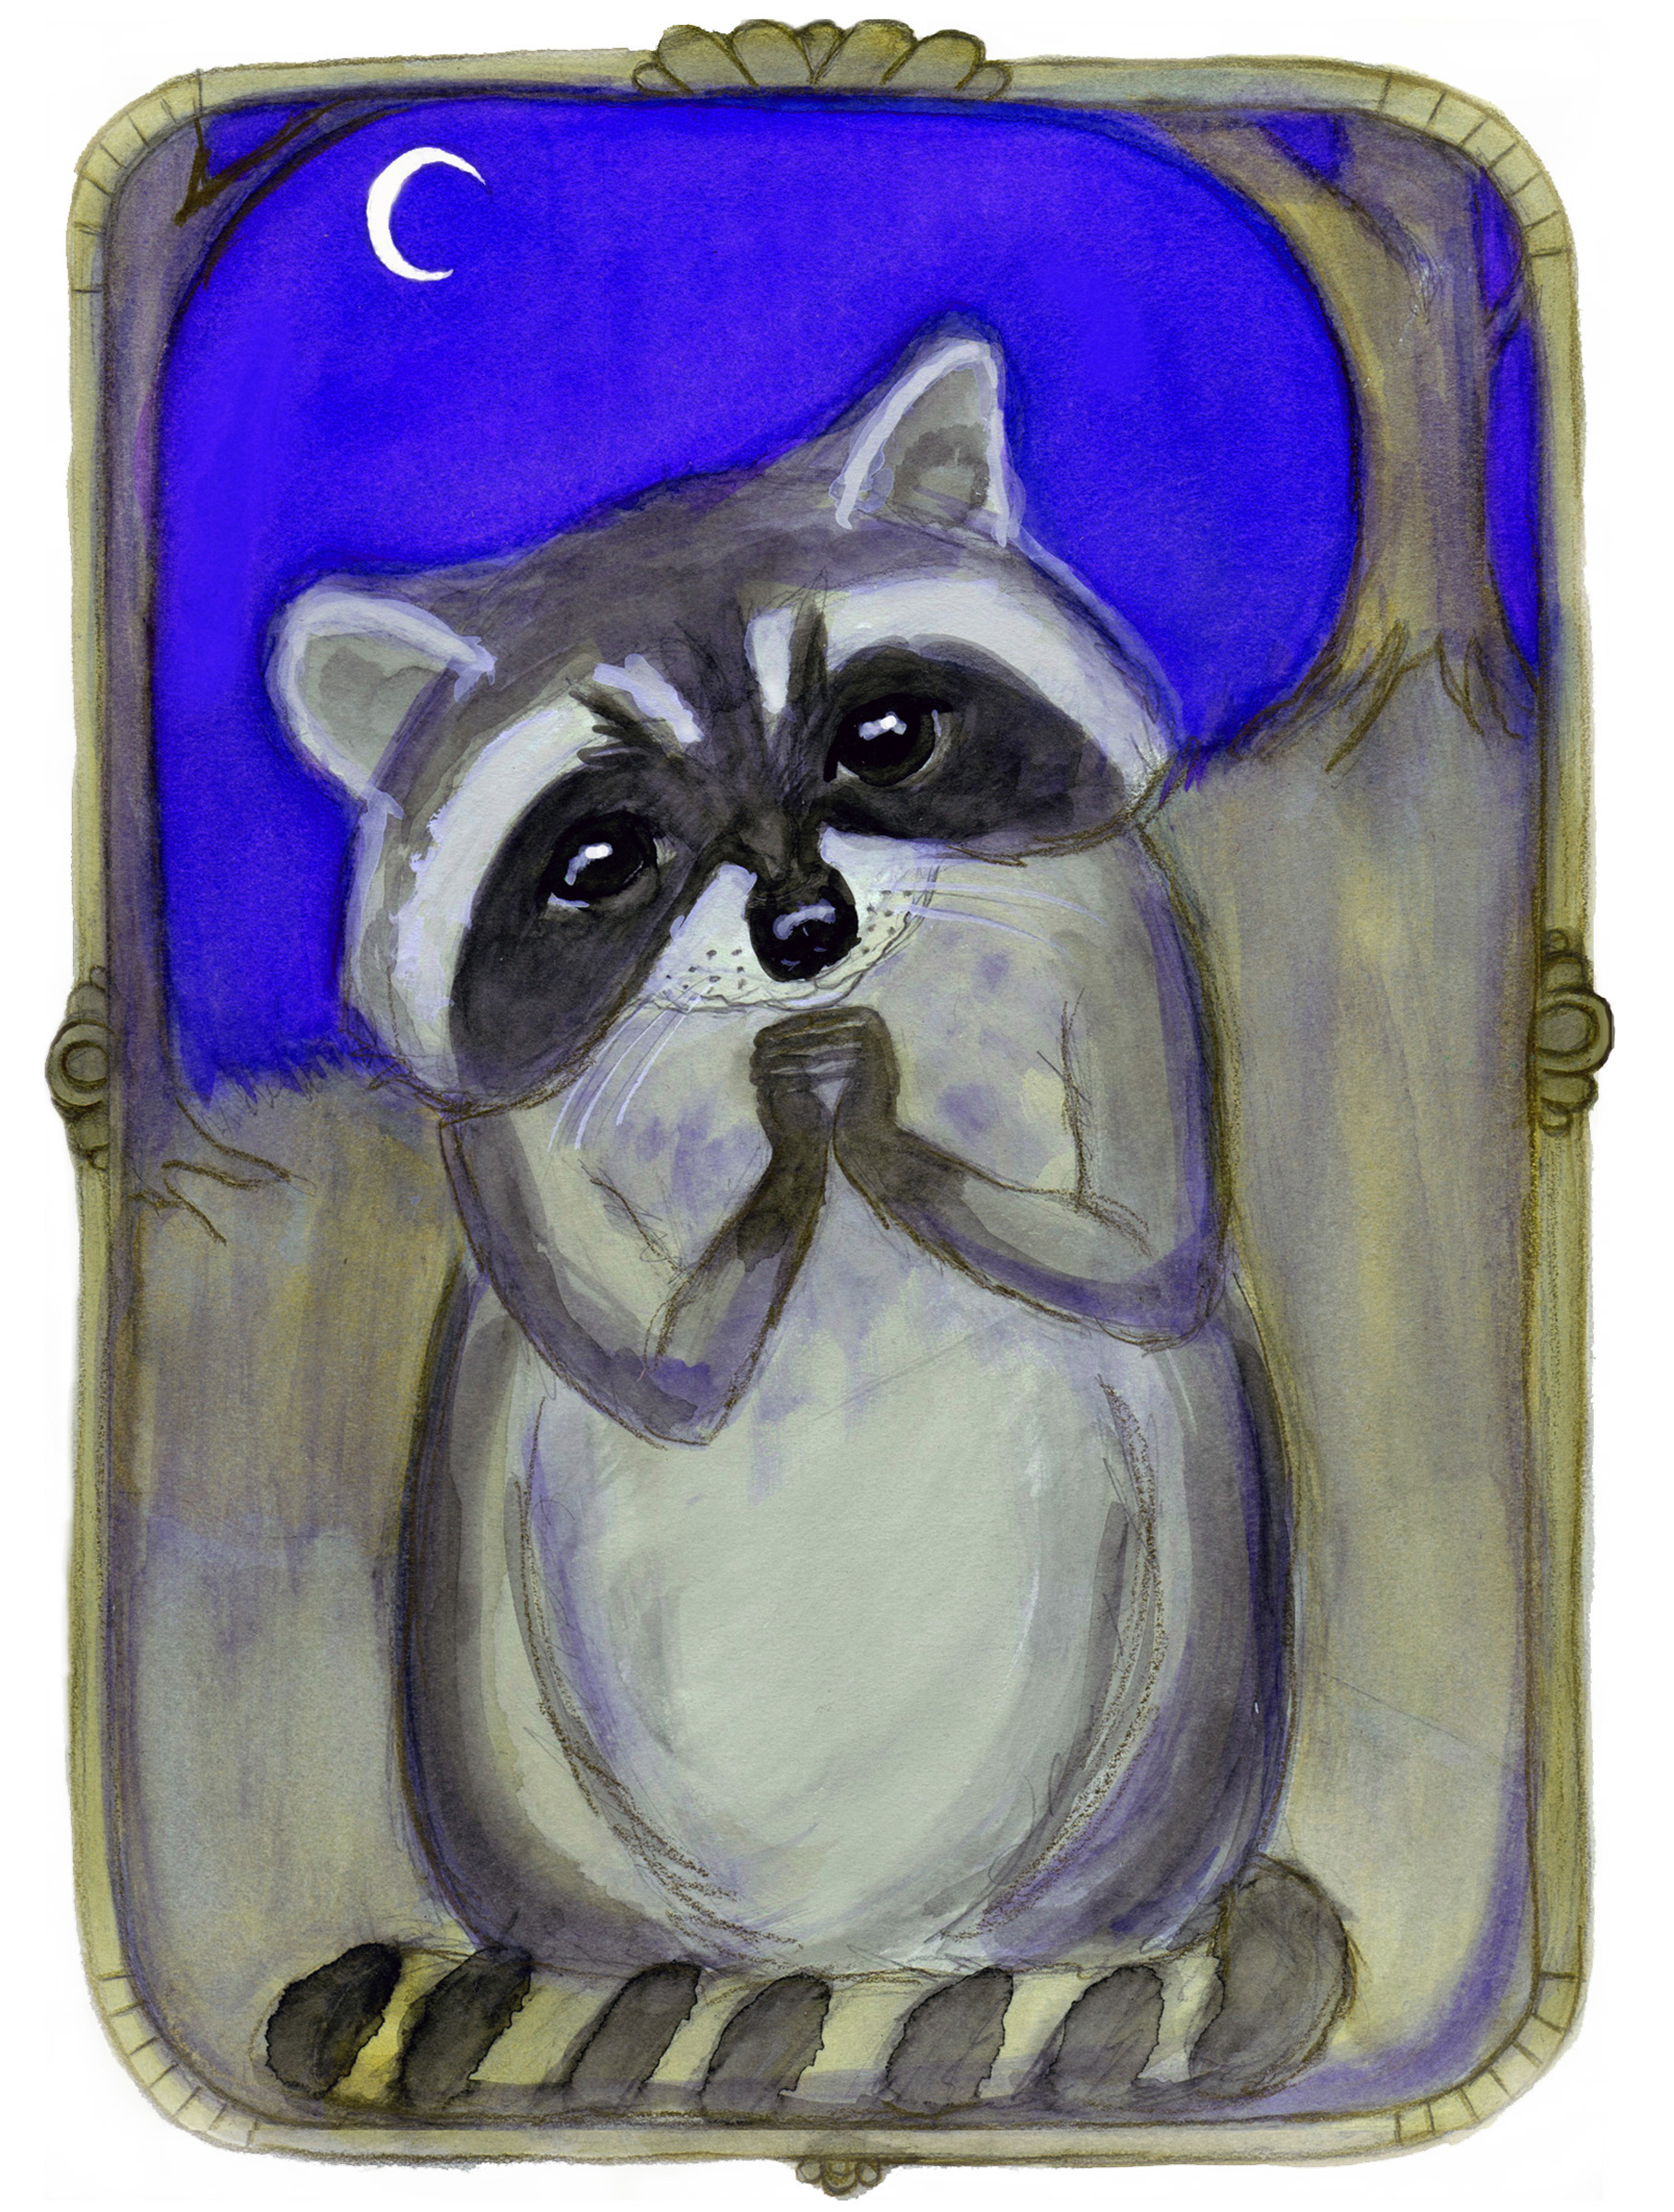 Reginald Raccoon and the Moon